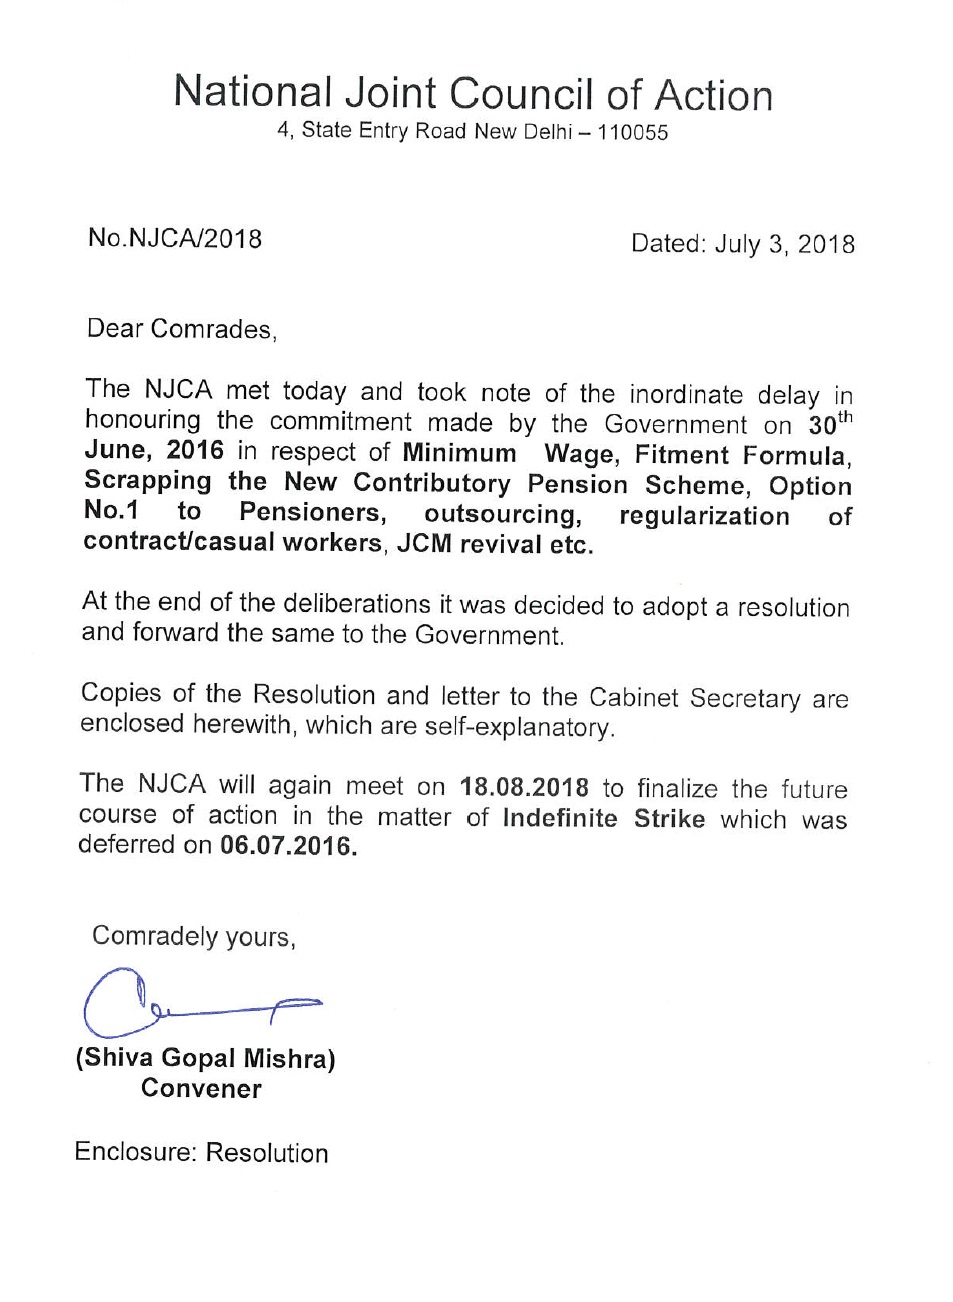 NJCA letter dated 03-07-2018